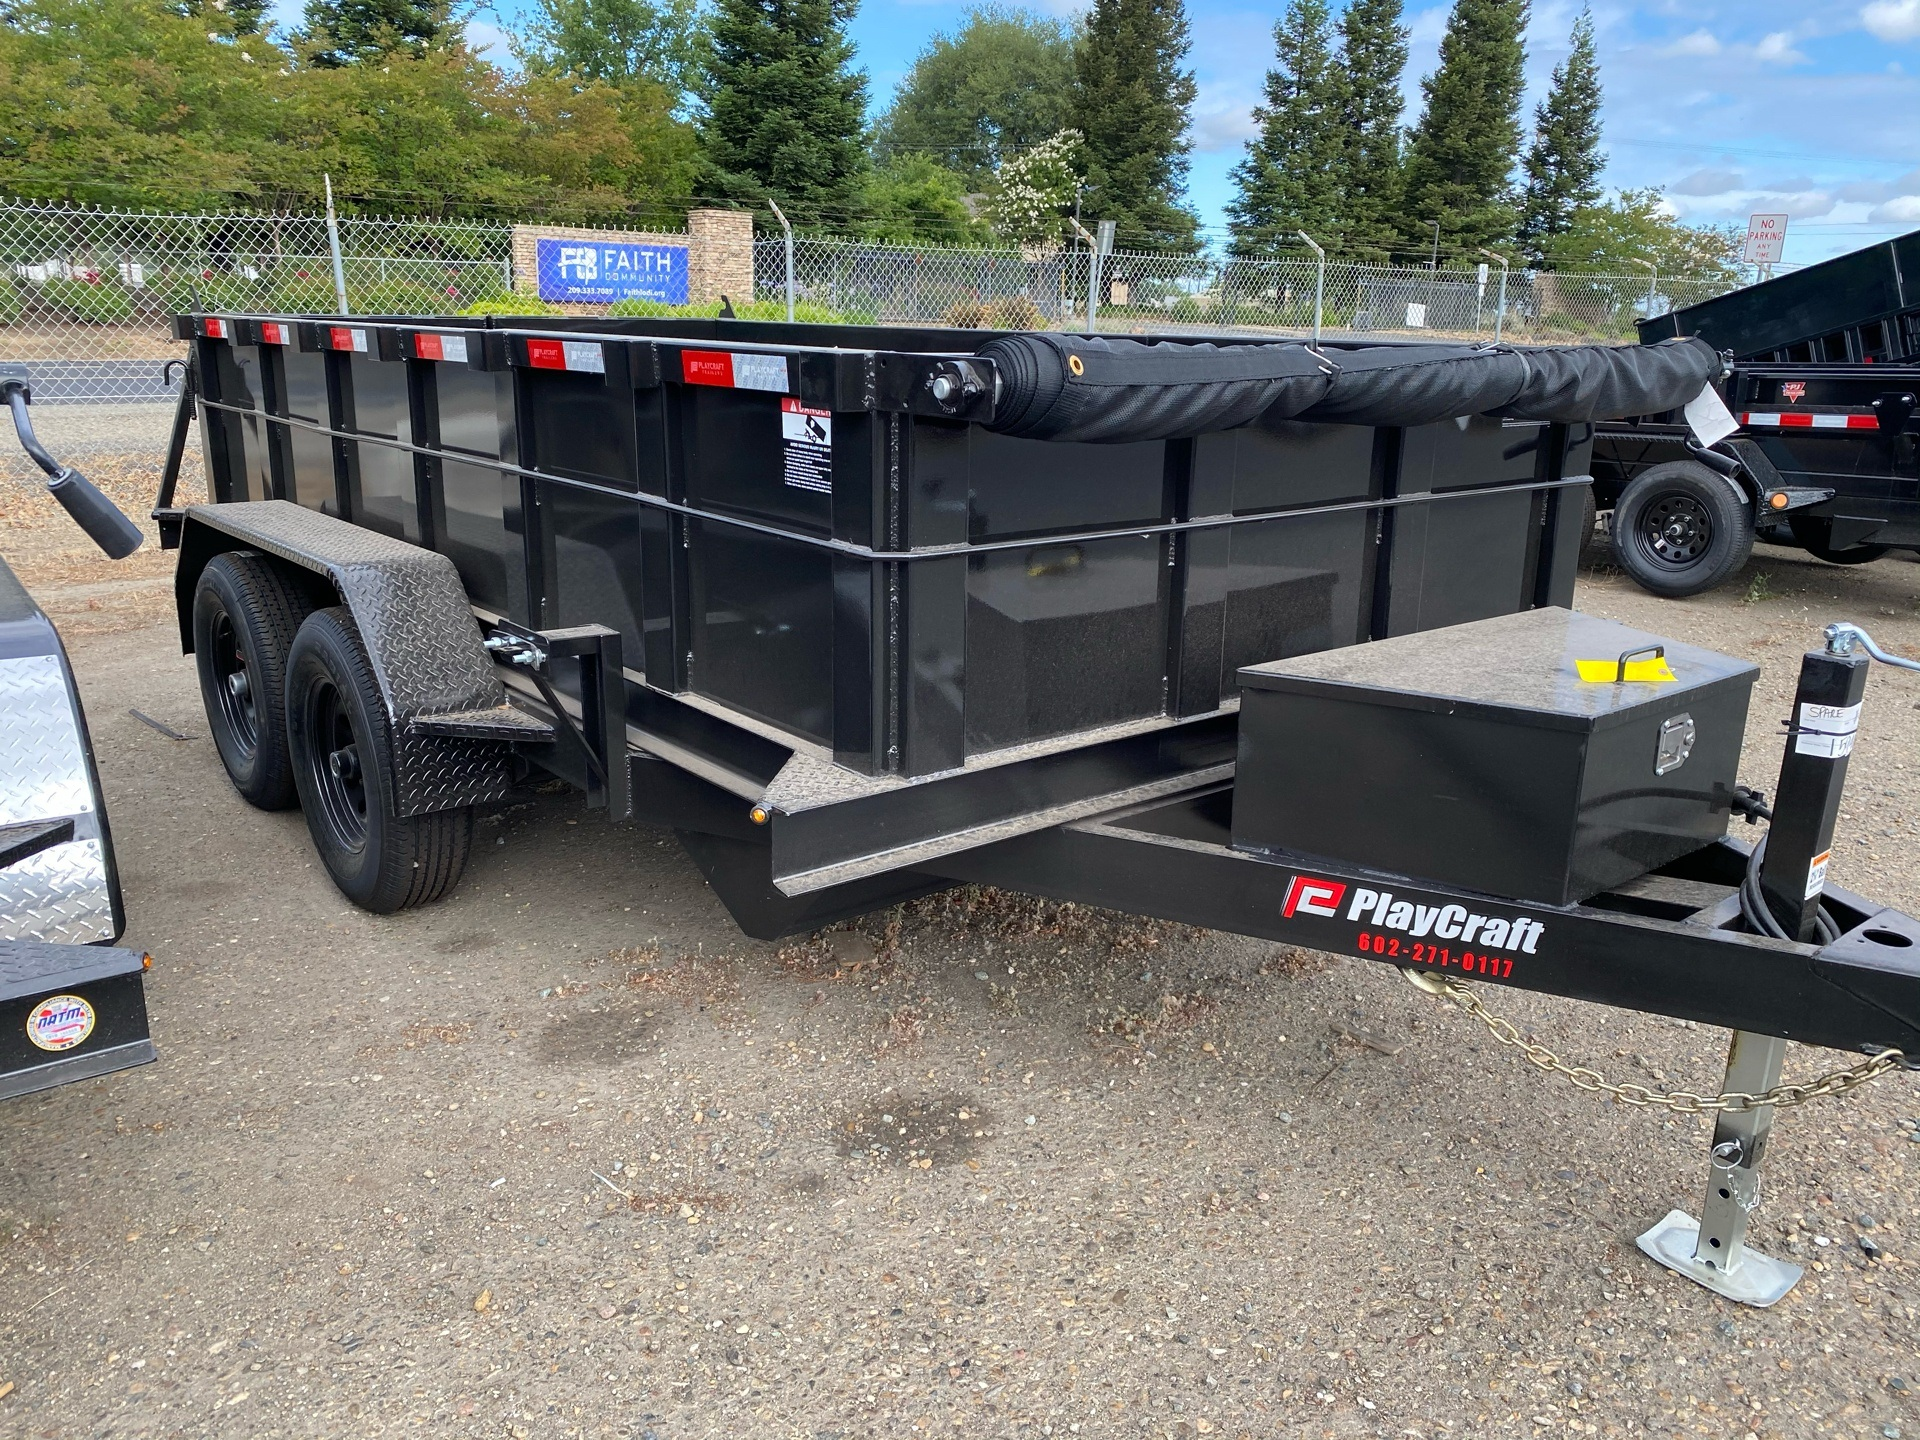 2020 Playcraft Trailers 6' x 12' Dump Trailer in Acampo, California - Photo 4